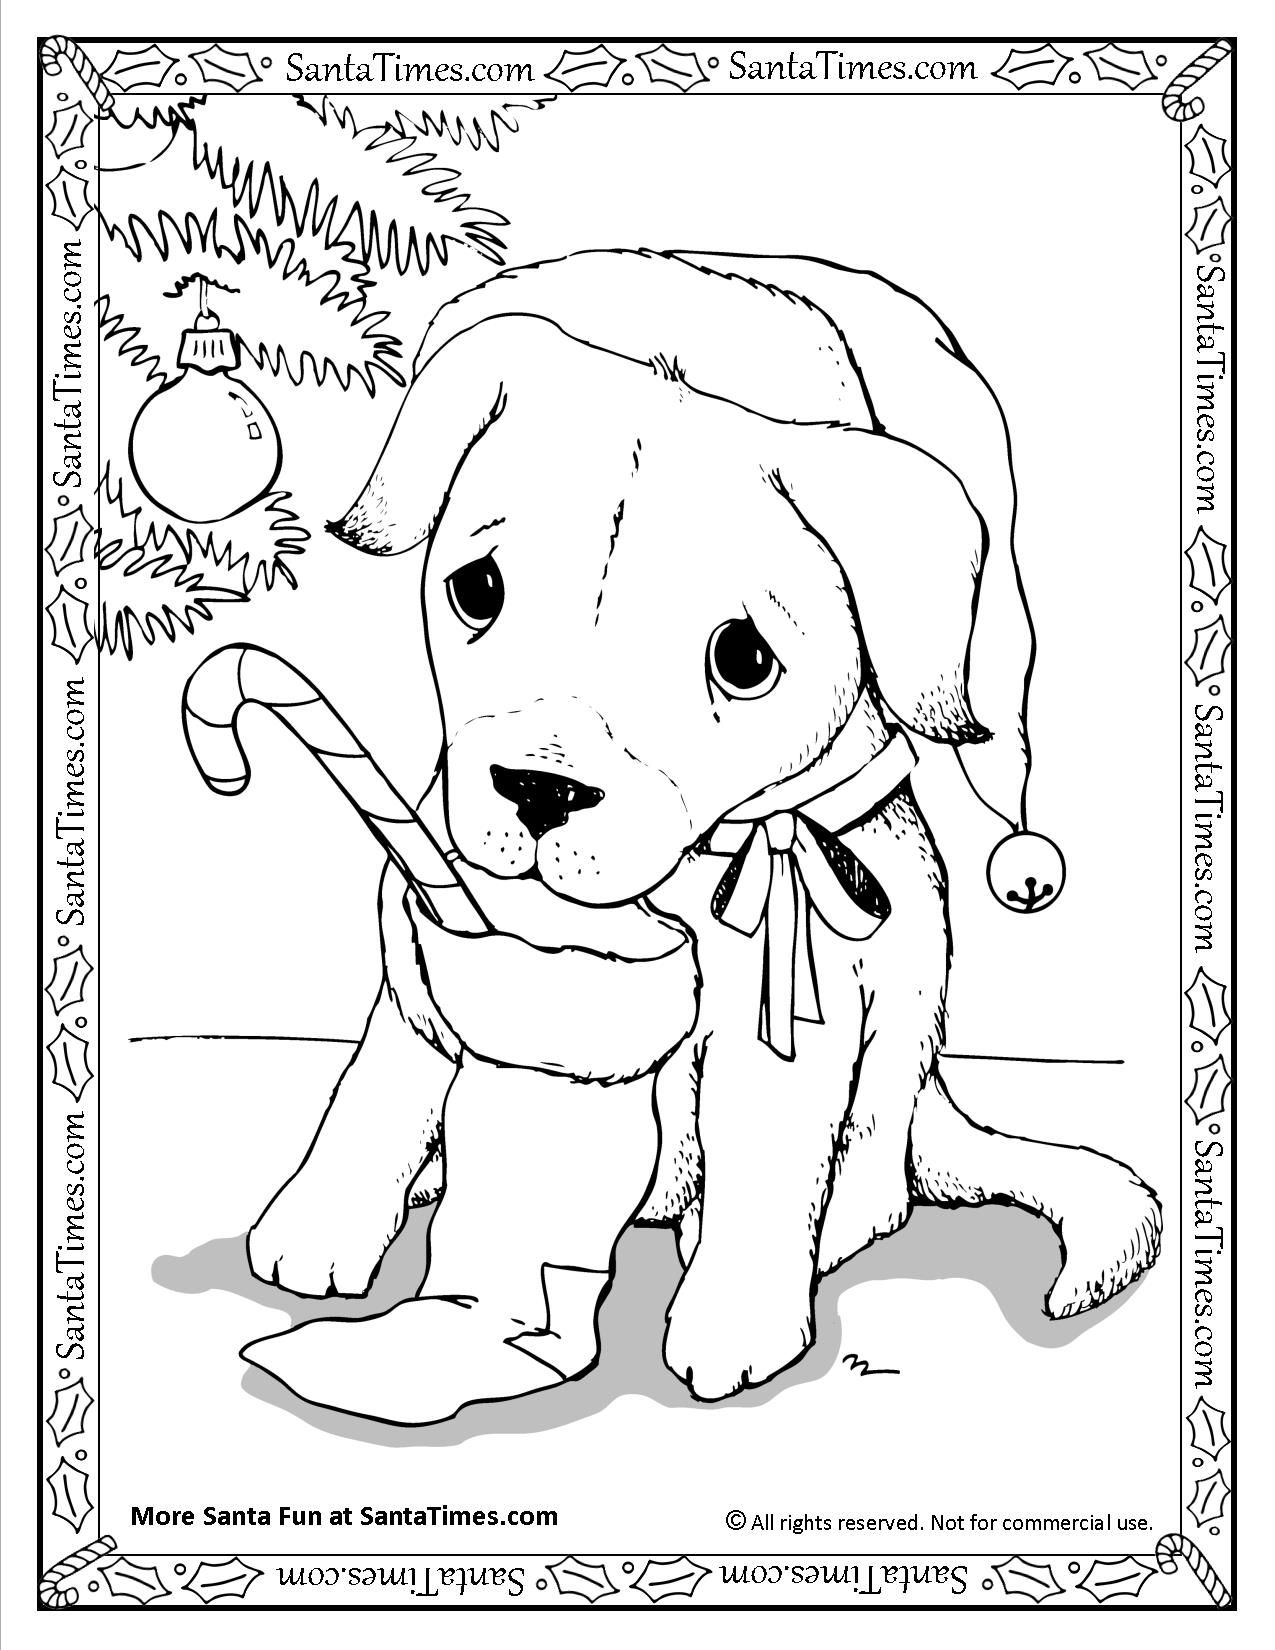 Christmas Coloring Pages With Dogs Santa Puppy Printable Page More Fun Activities